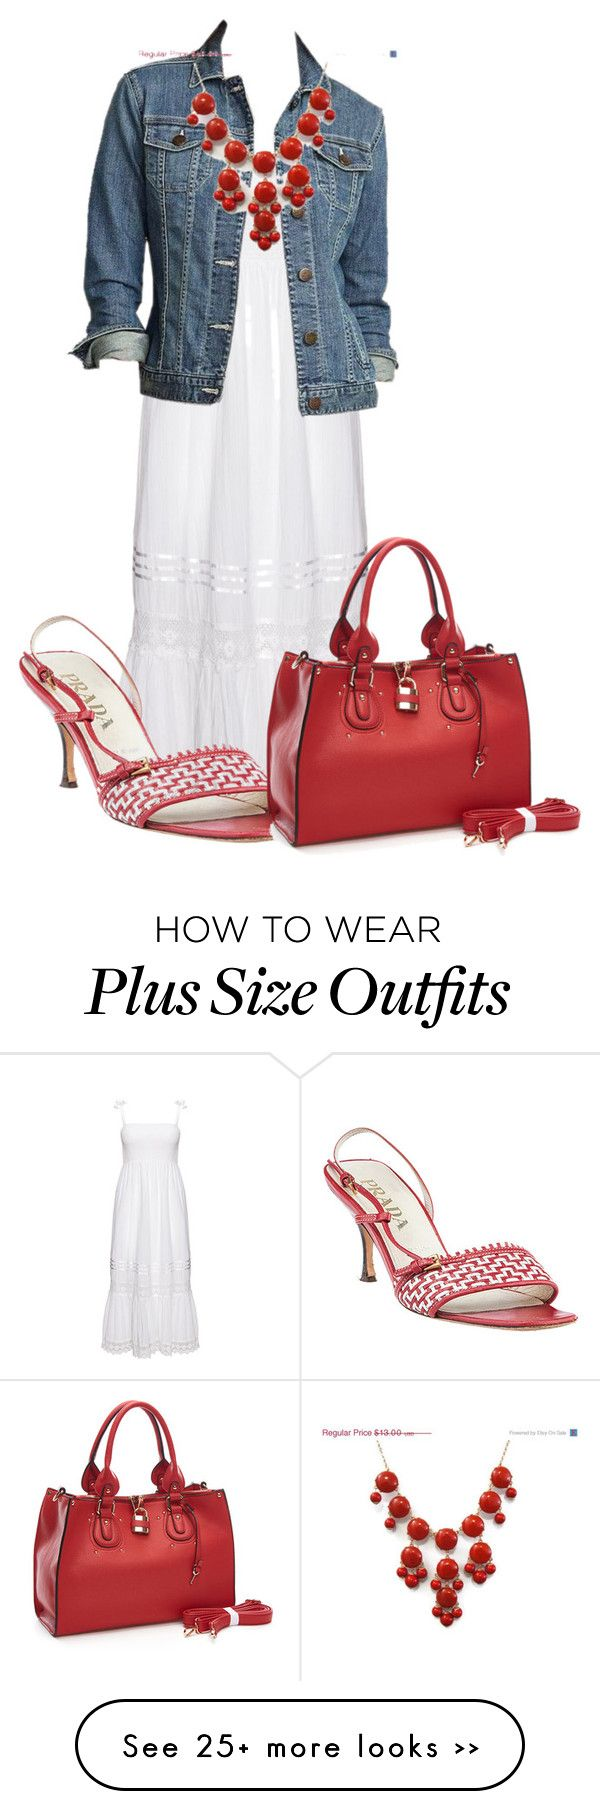 """Untitled #8292"" by nanette-253 on Polyvore"